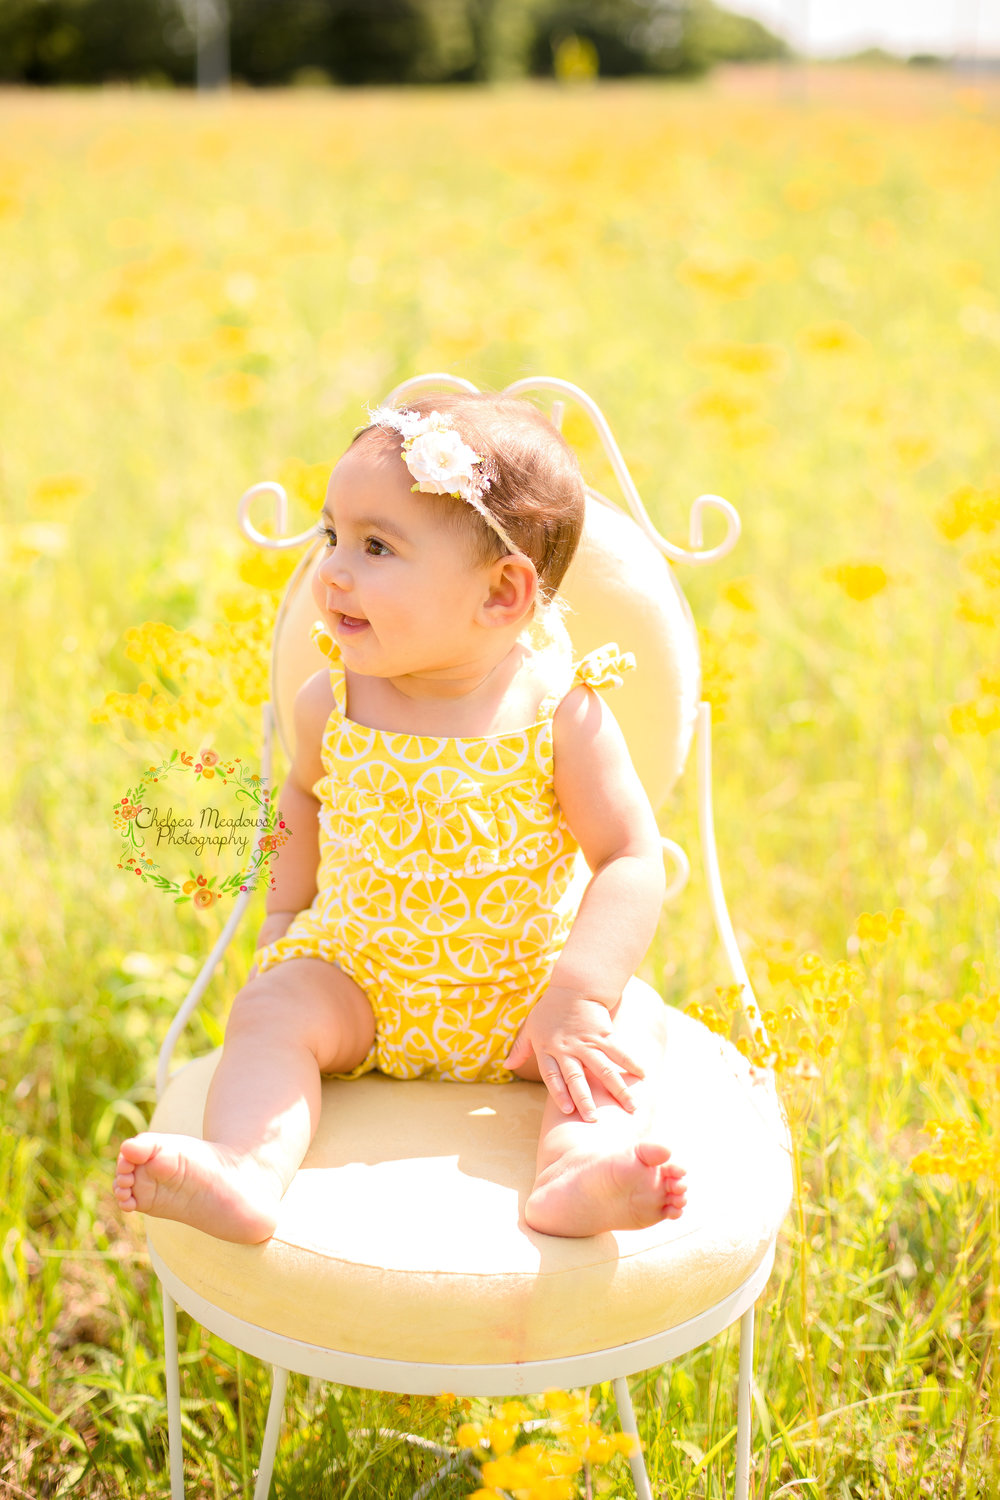 Camryn 6 Month Session - Nashville Family Photographer - Chelsea Meadows Photography (12)_edited-1.jpg